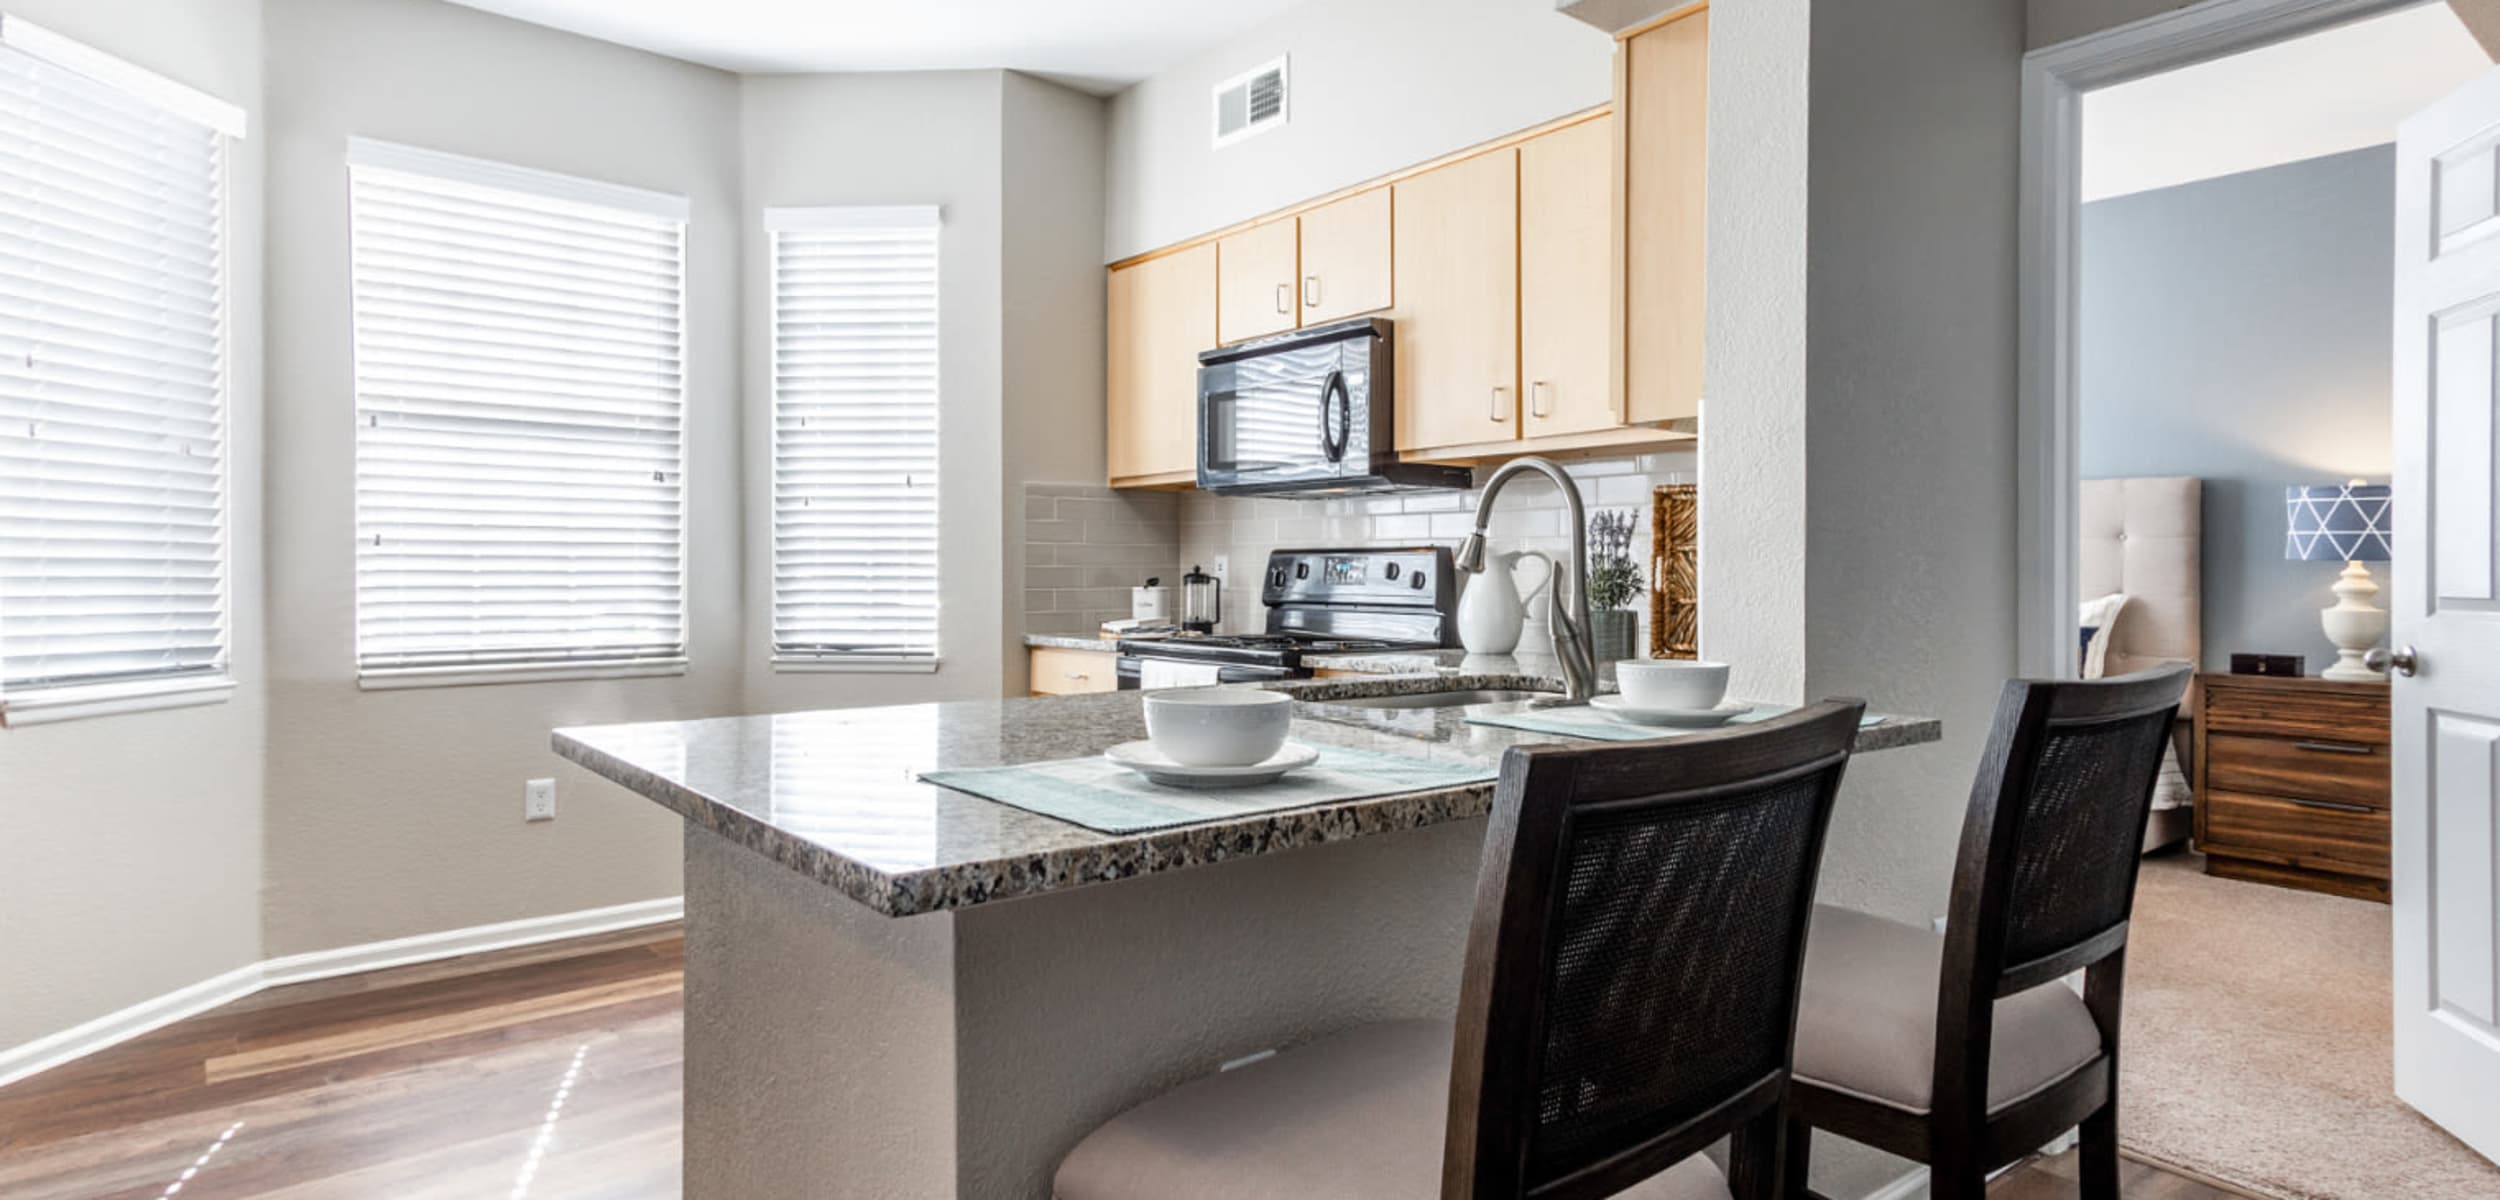 Modern, sleek kitchen at The Links at Plum Creek in Castle Rock, Colorado